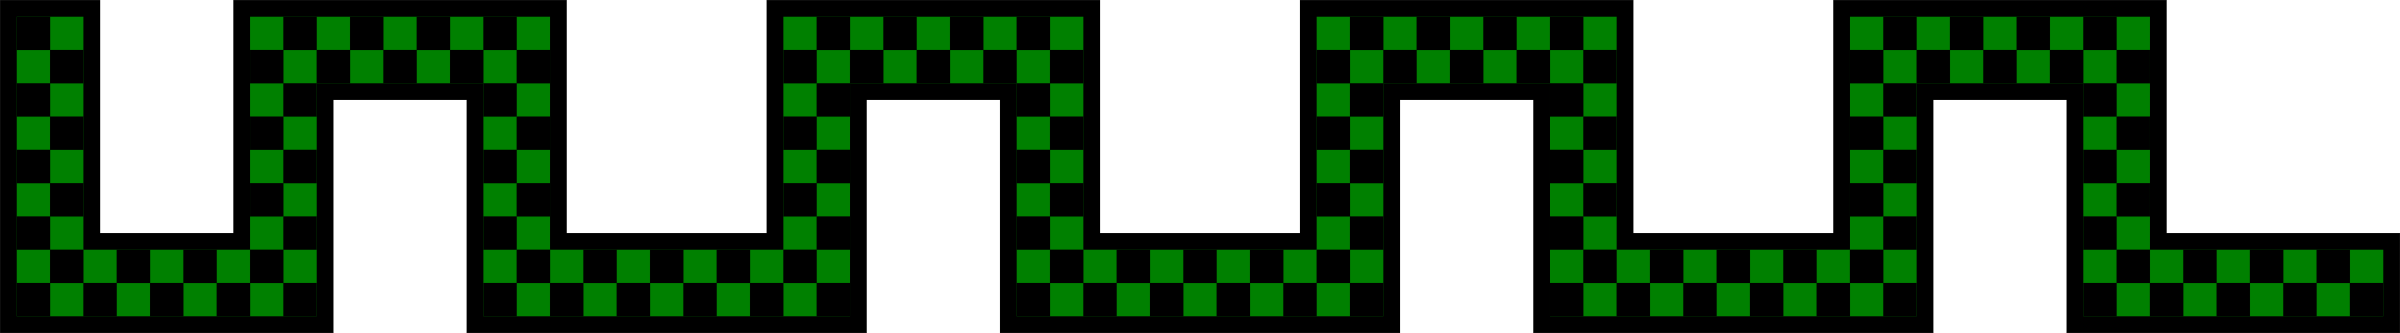 Divider - checked green snake shape by Gerald_G